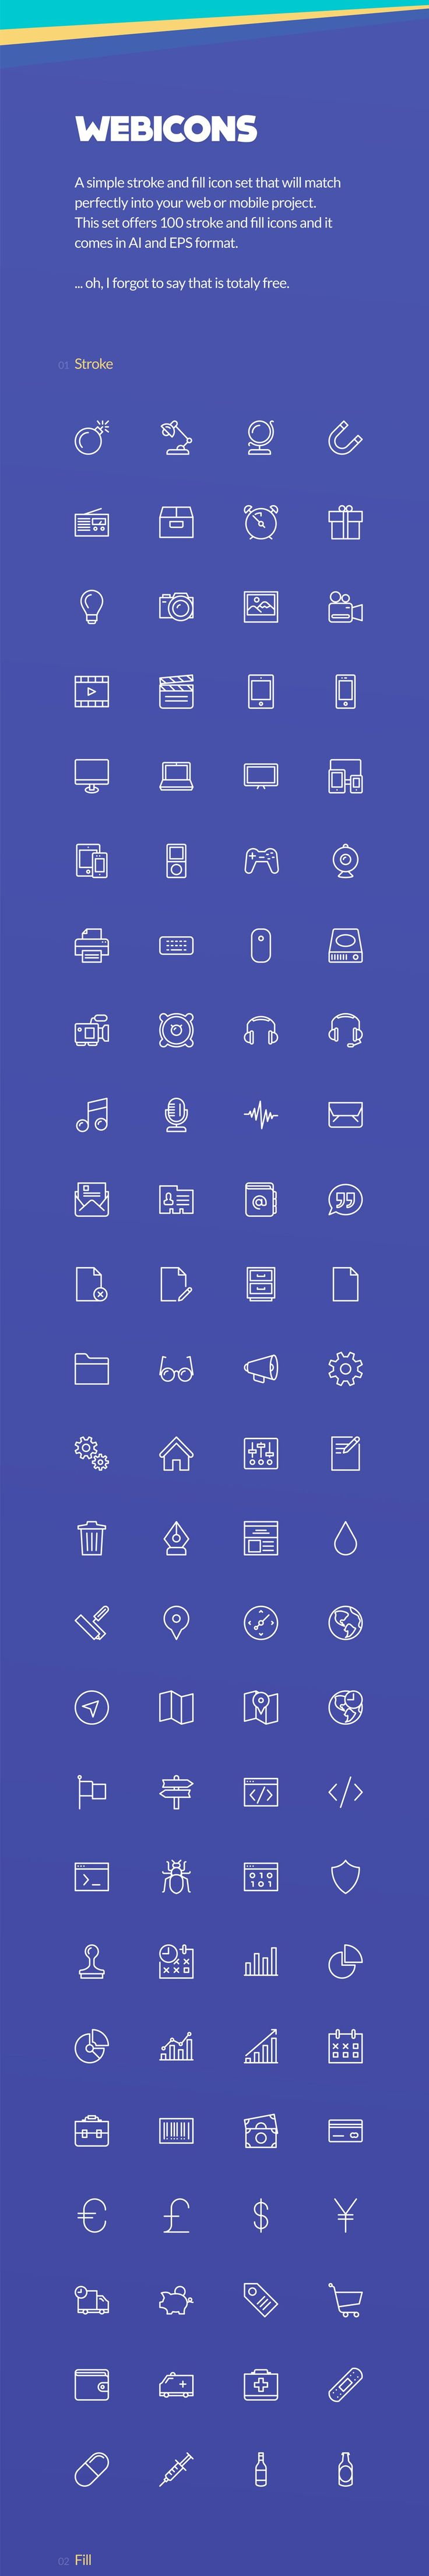 http://www.cssauthor.com/free-icons-web-user-interface-design-70/